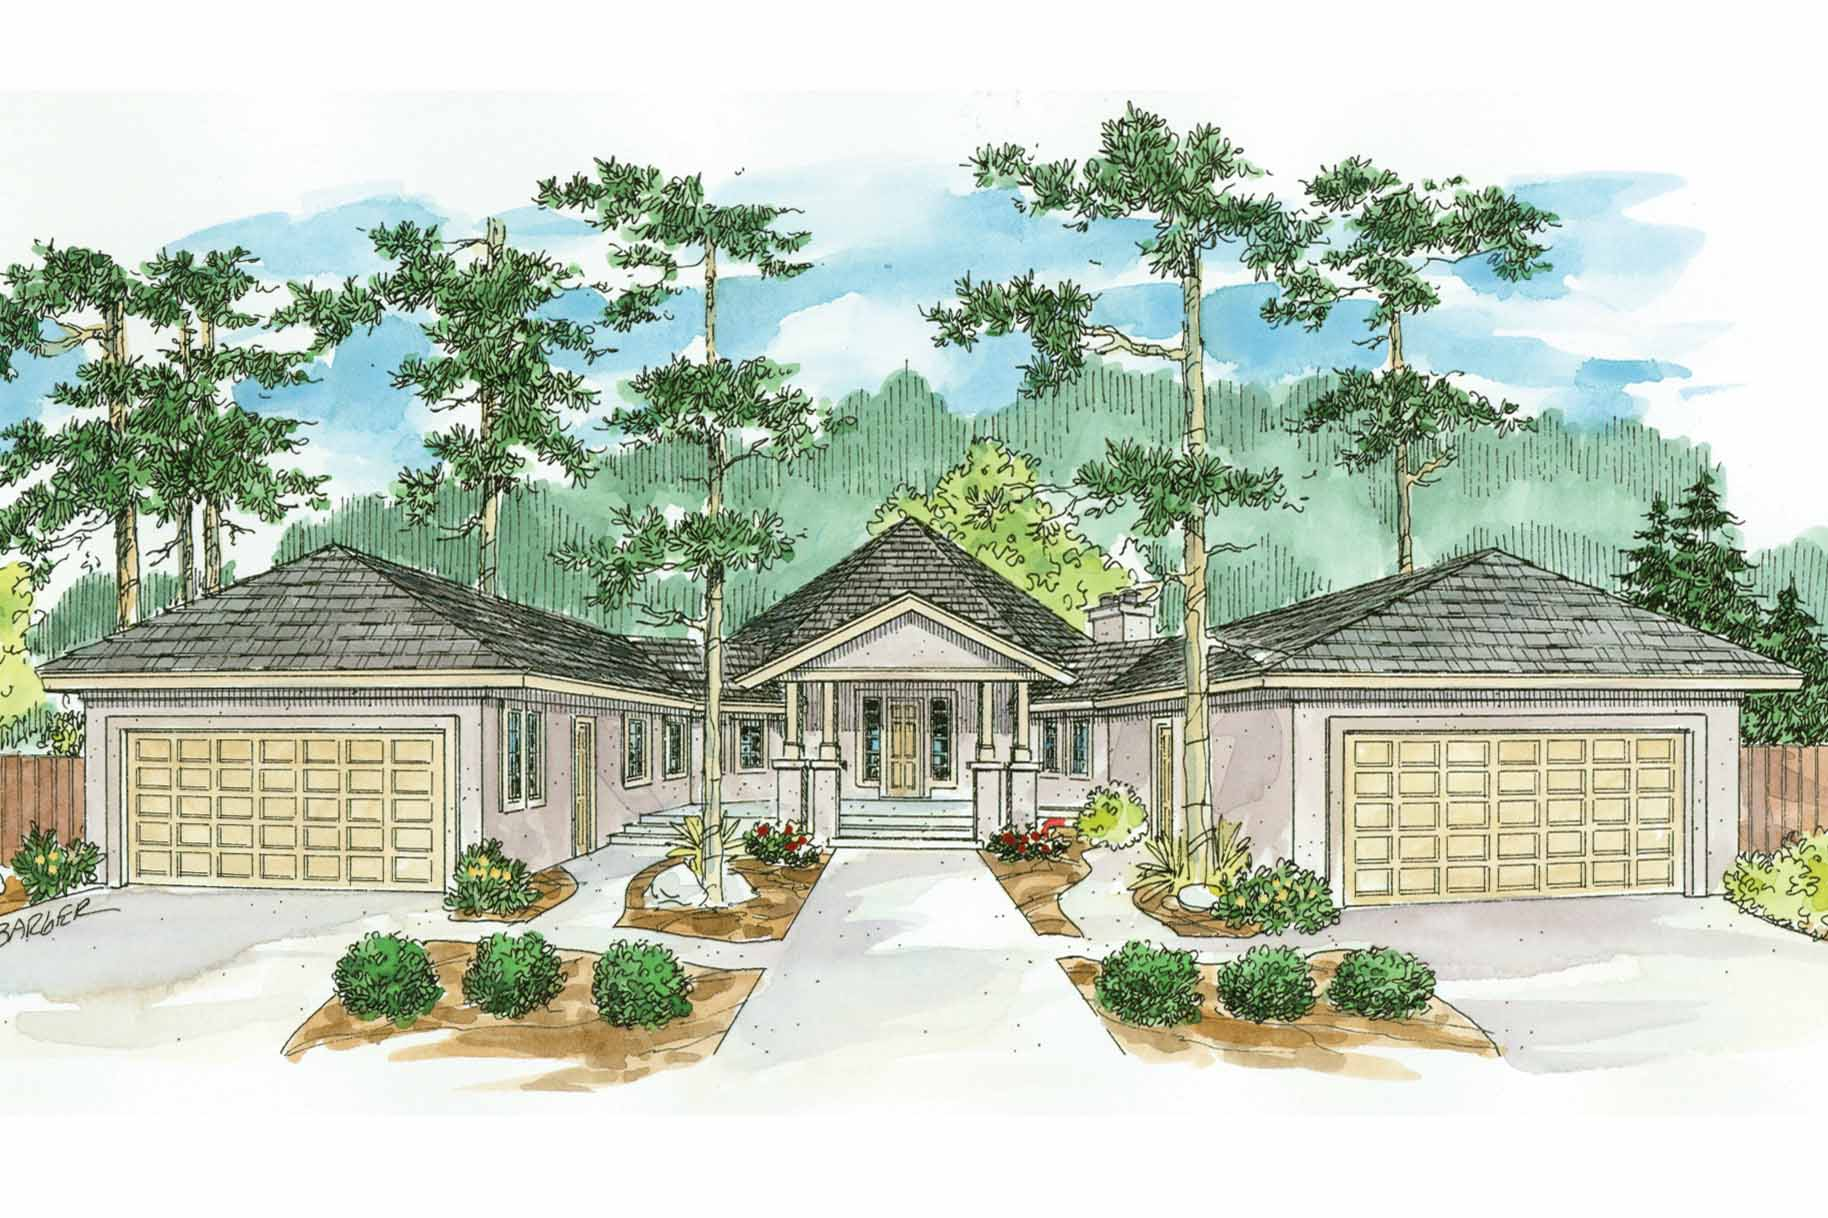 Florida House Plan - Sonora 10-533 - Front Elevation